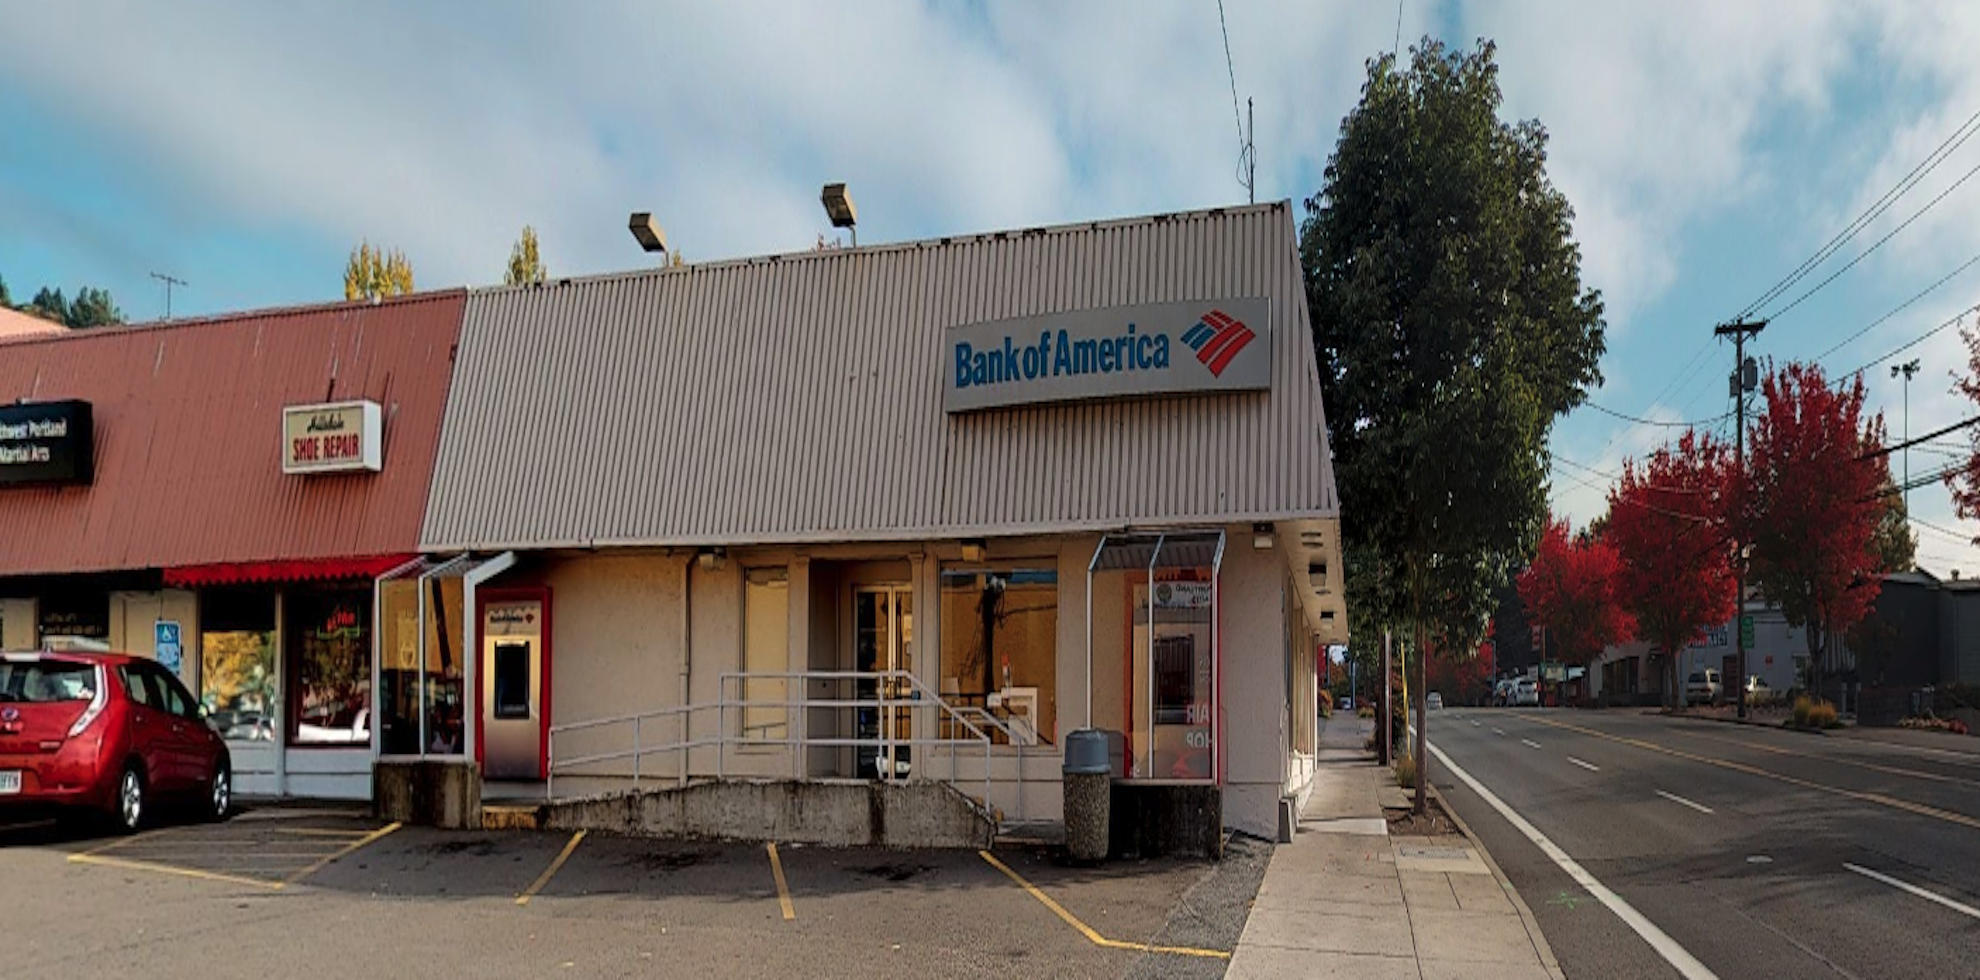 Bank of America financial center with walk-up ATM   6309 SW Capitol Hwy, Portland, OR 97239